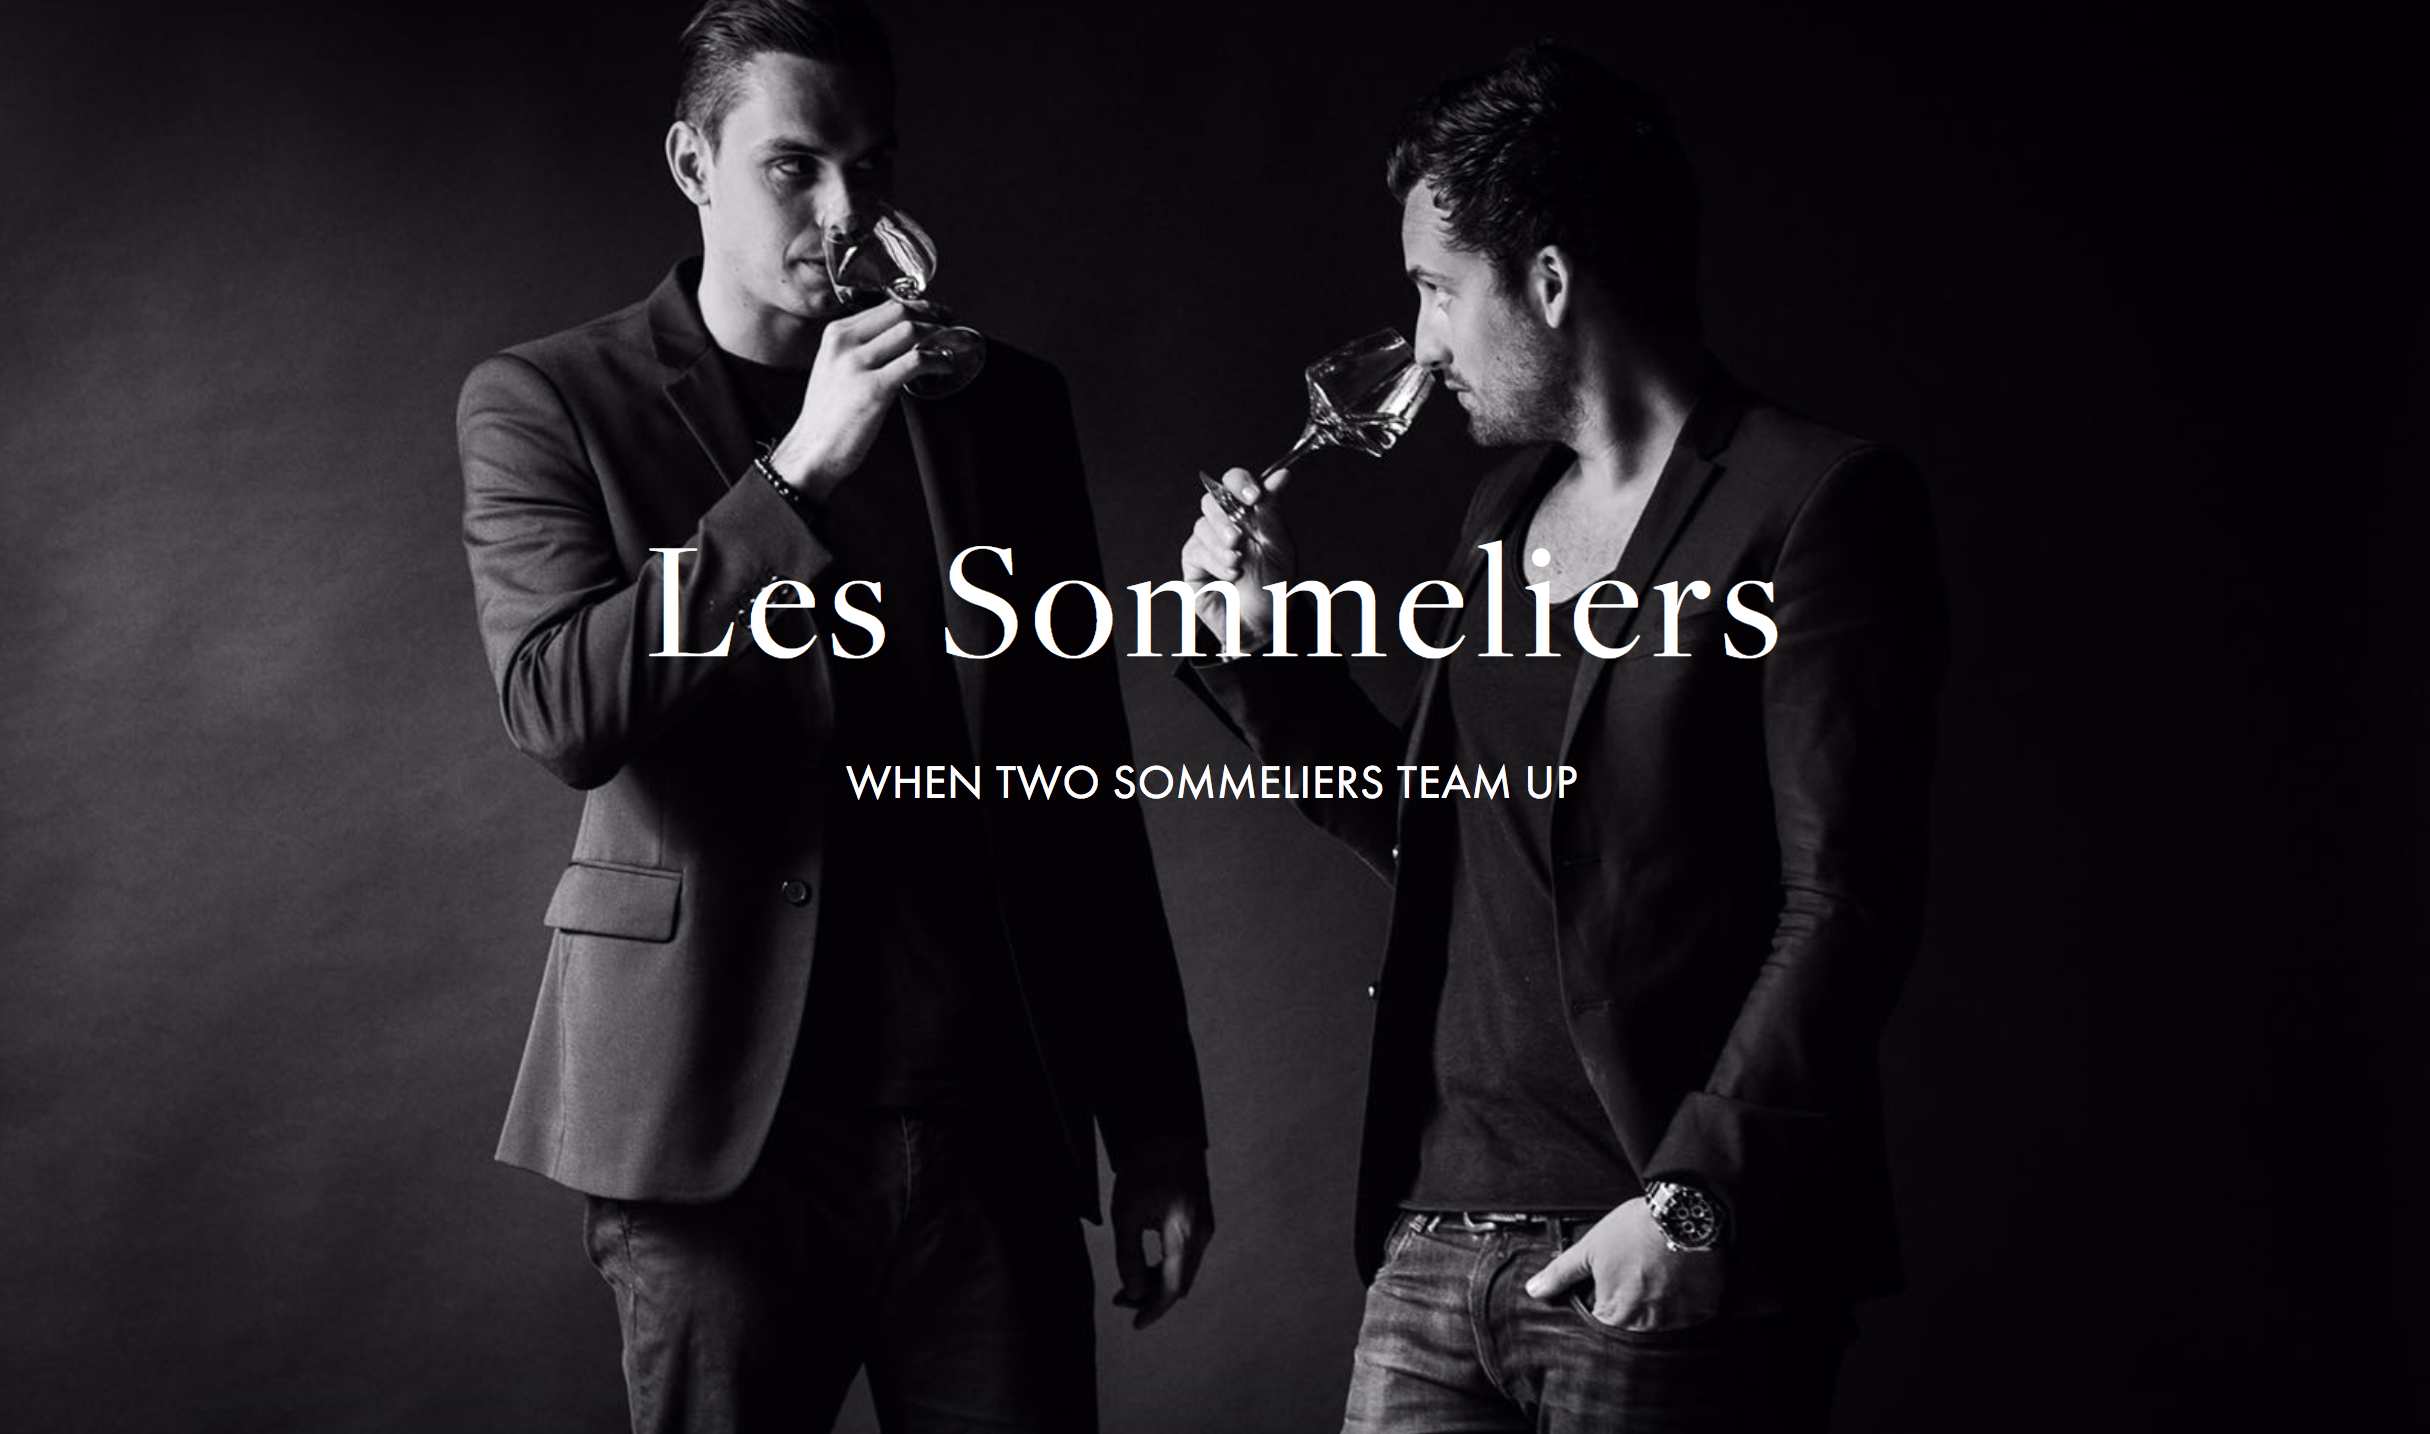 www.lessommeliers.co - LES SOMMELIERS